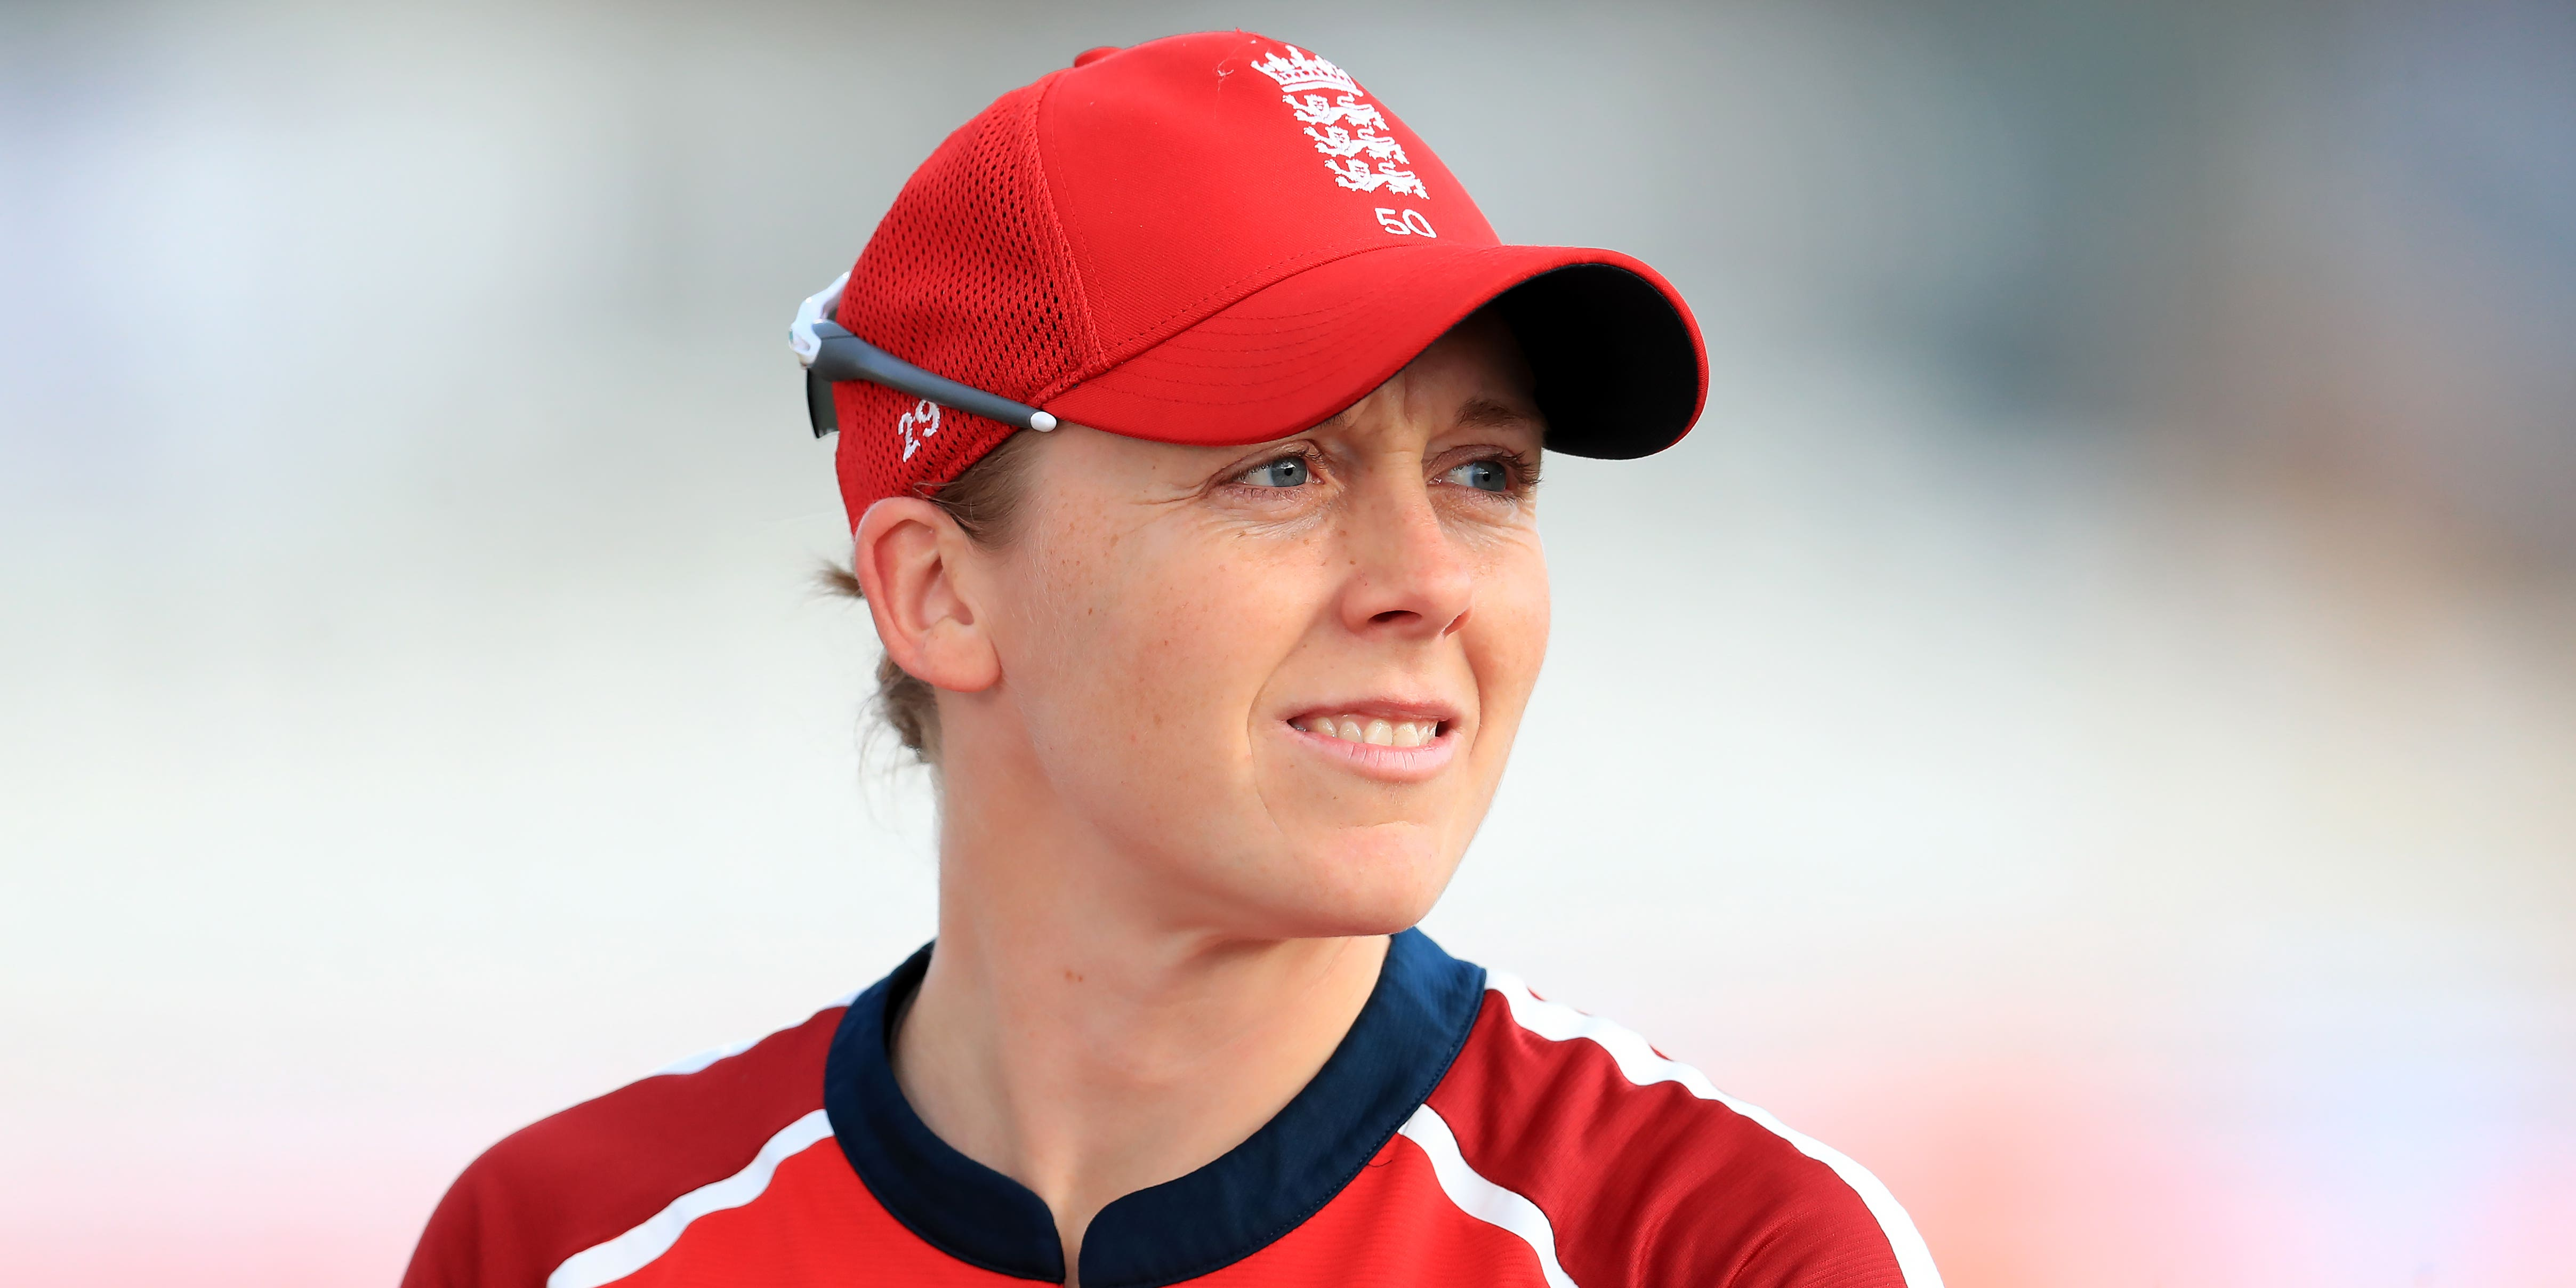 Heather Knight frustrated to miss century in her 100th game as England captain